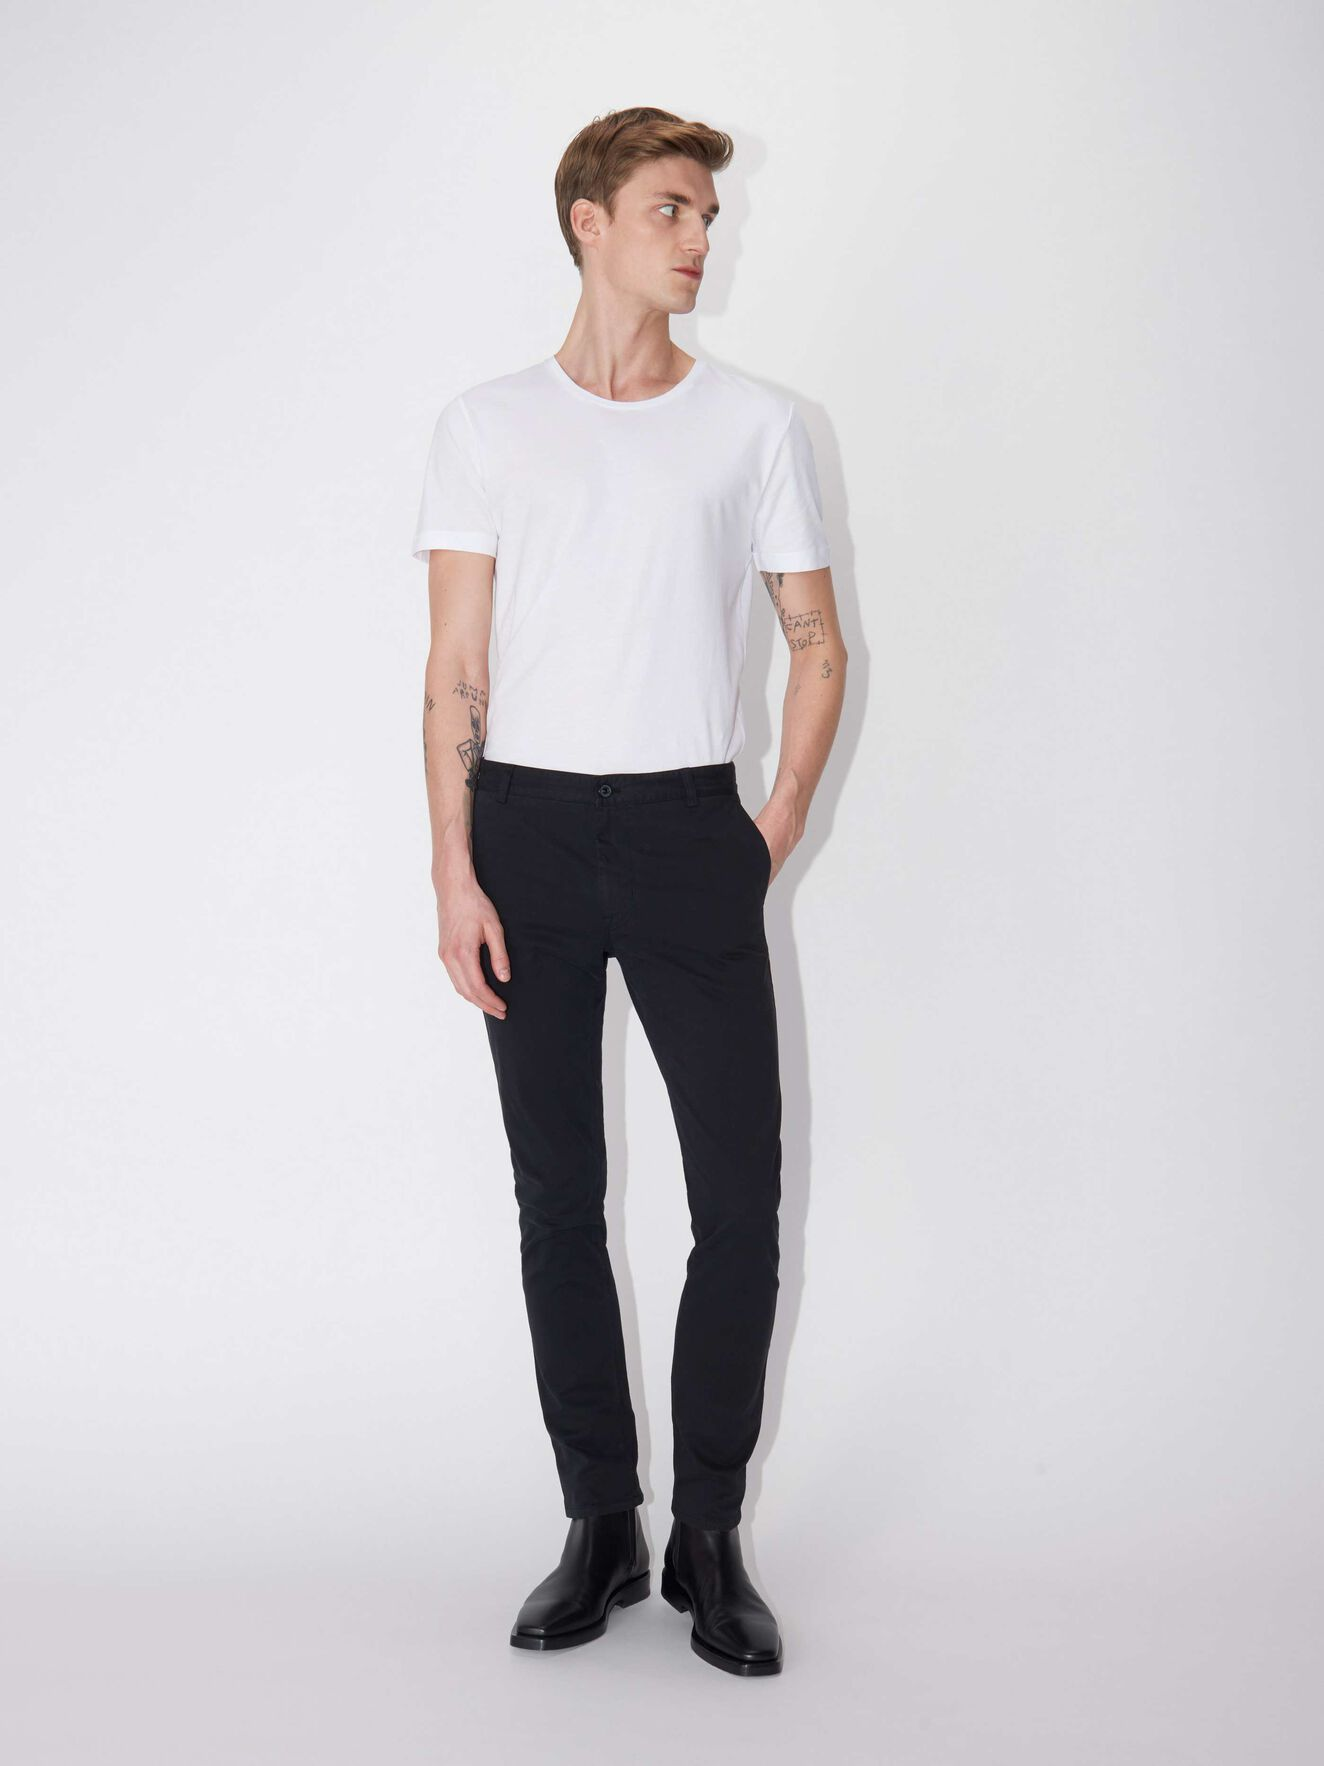 Transit Trousers in Black from Tiger of Sweden